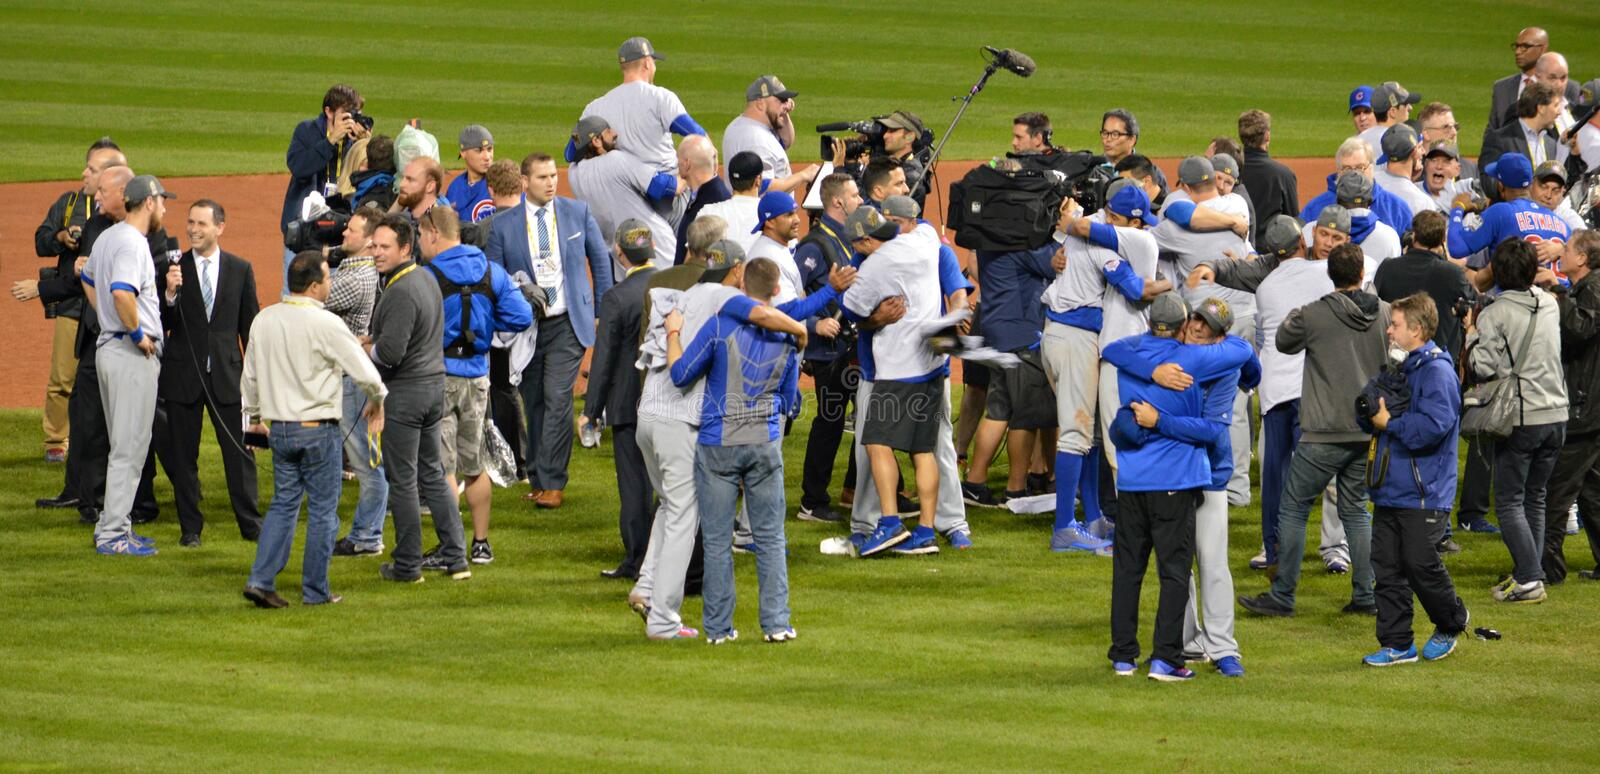 The Chicago Cubs on Field Celebration 2016 World Series royalty free stock photography